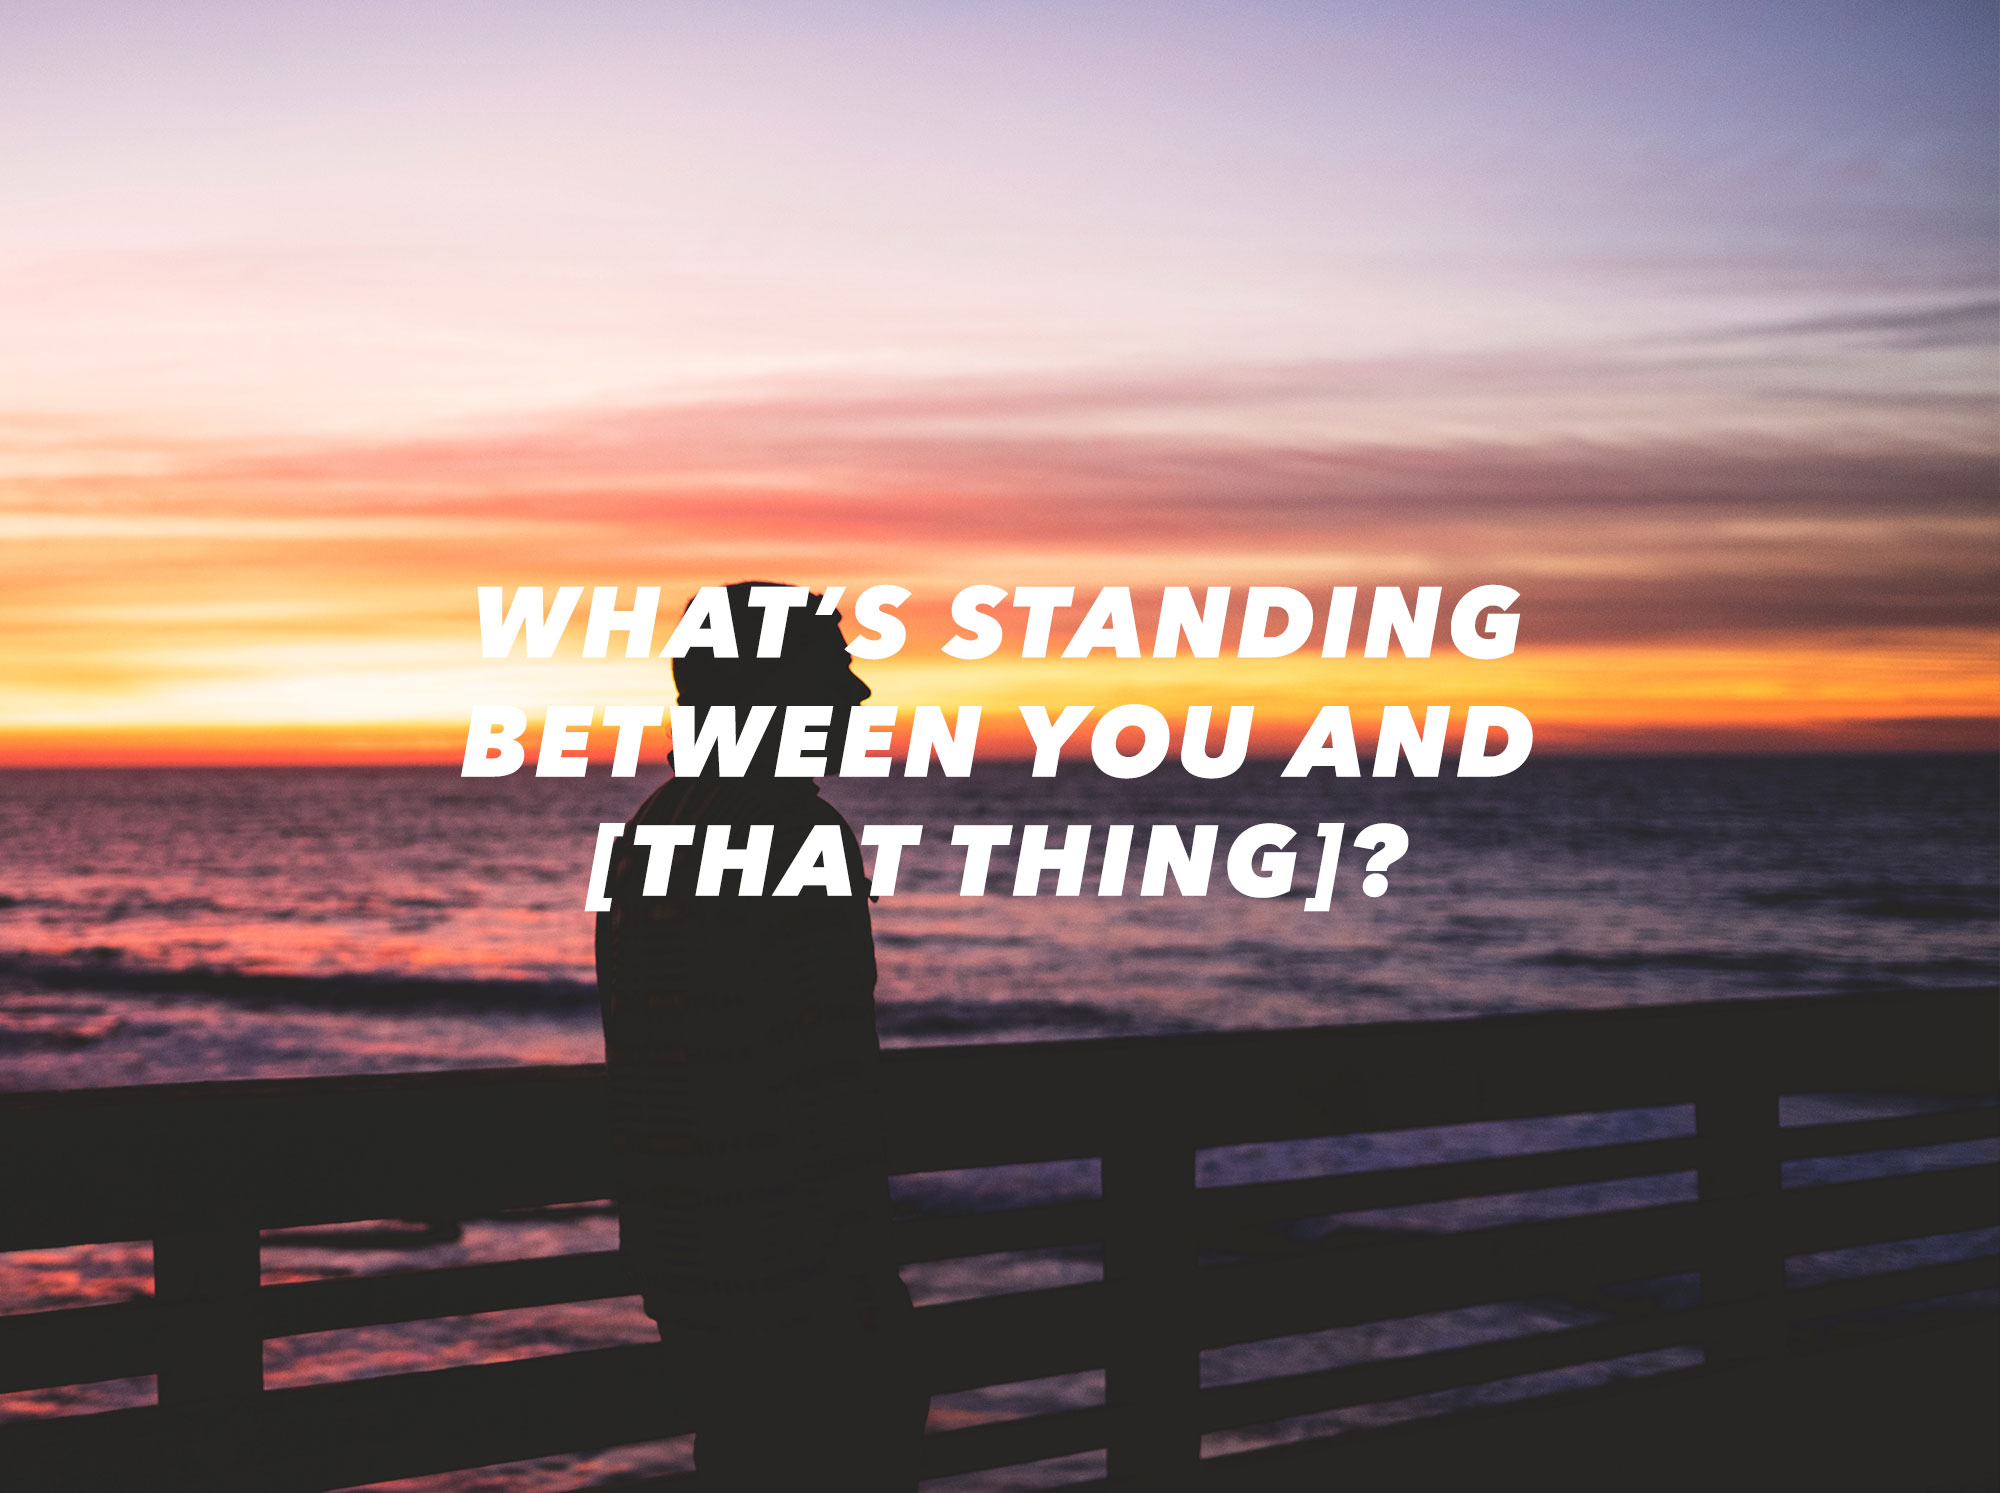 What's standing between you and that thing?